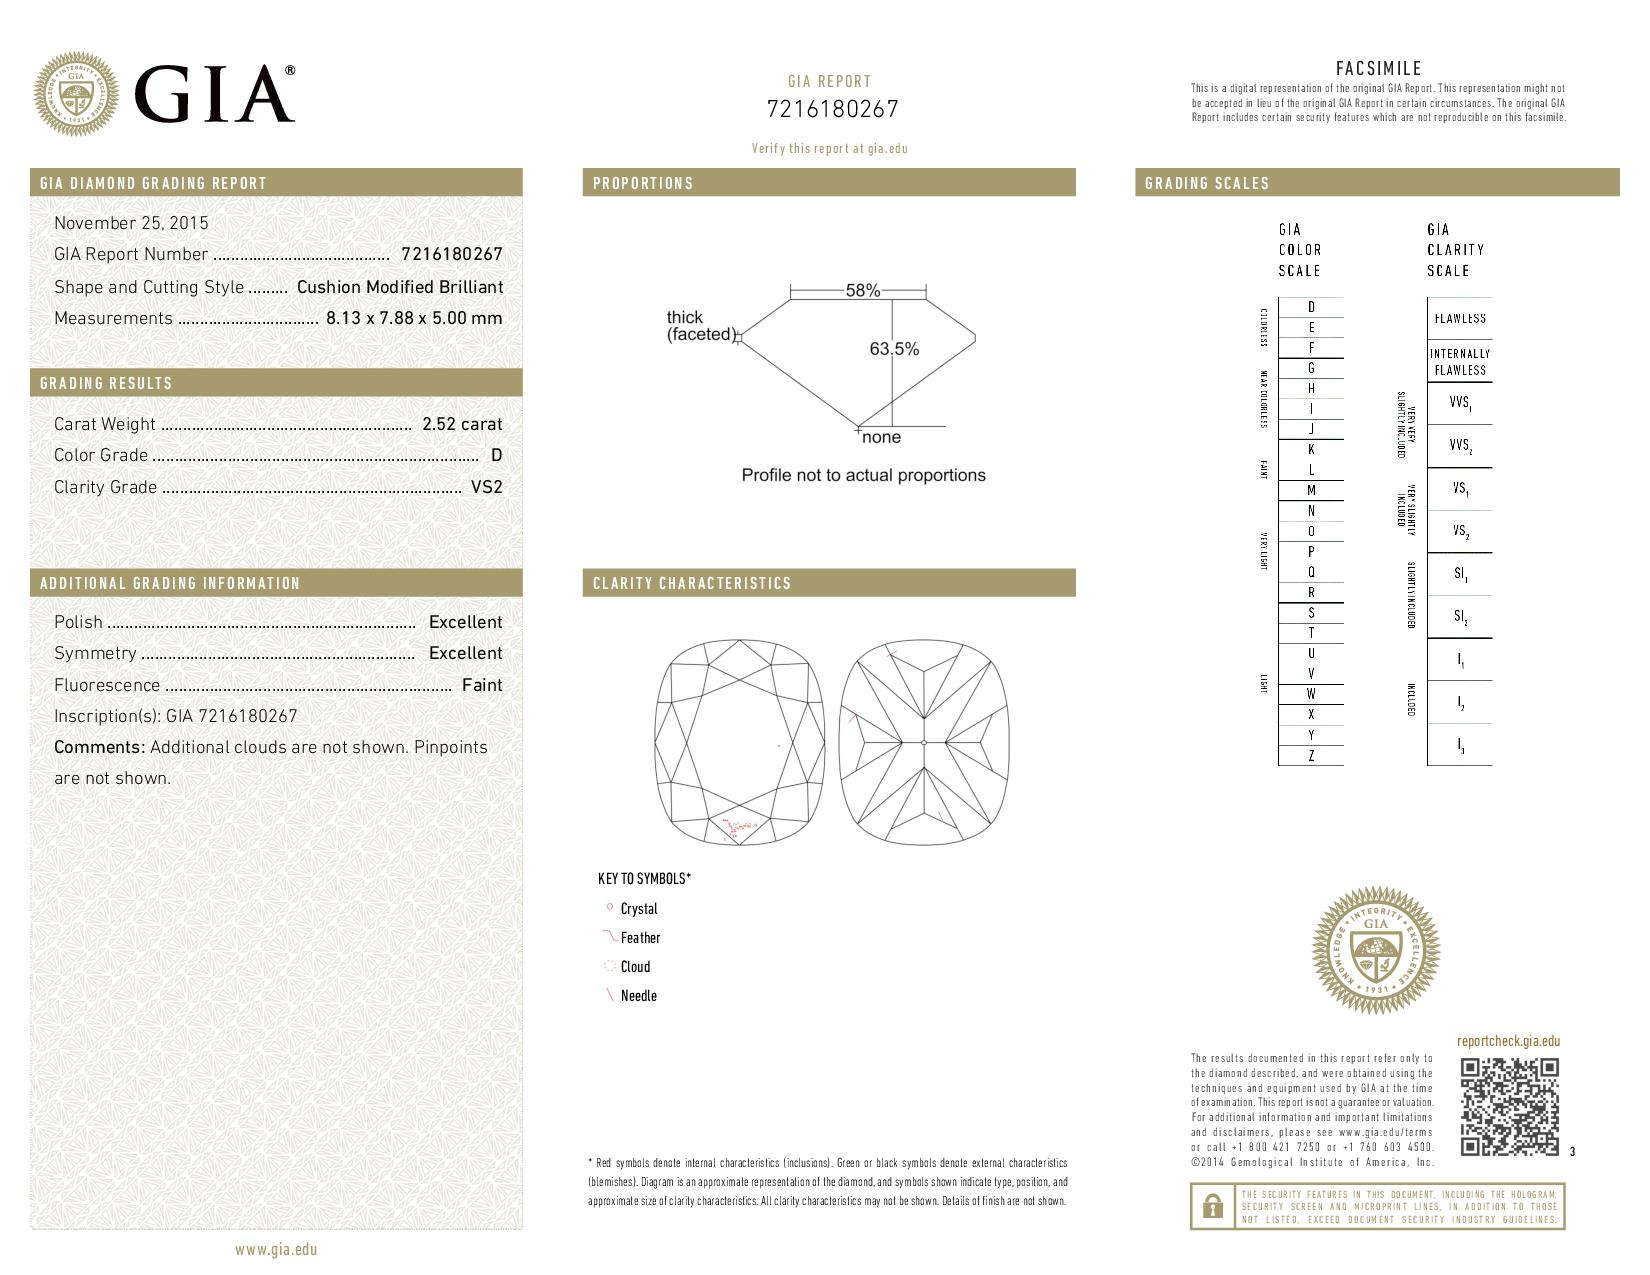 This is a 2.52 carat cushion shape, D color, VS2 clarity natural diamond accompanied by a GIA grading report.